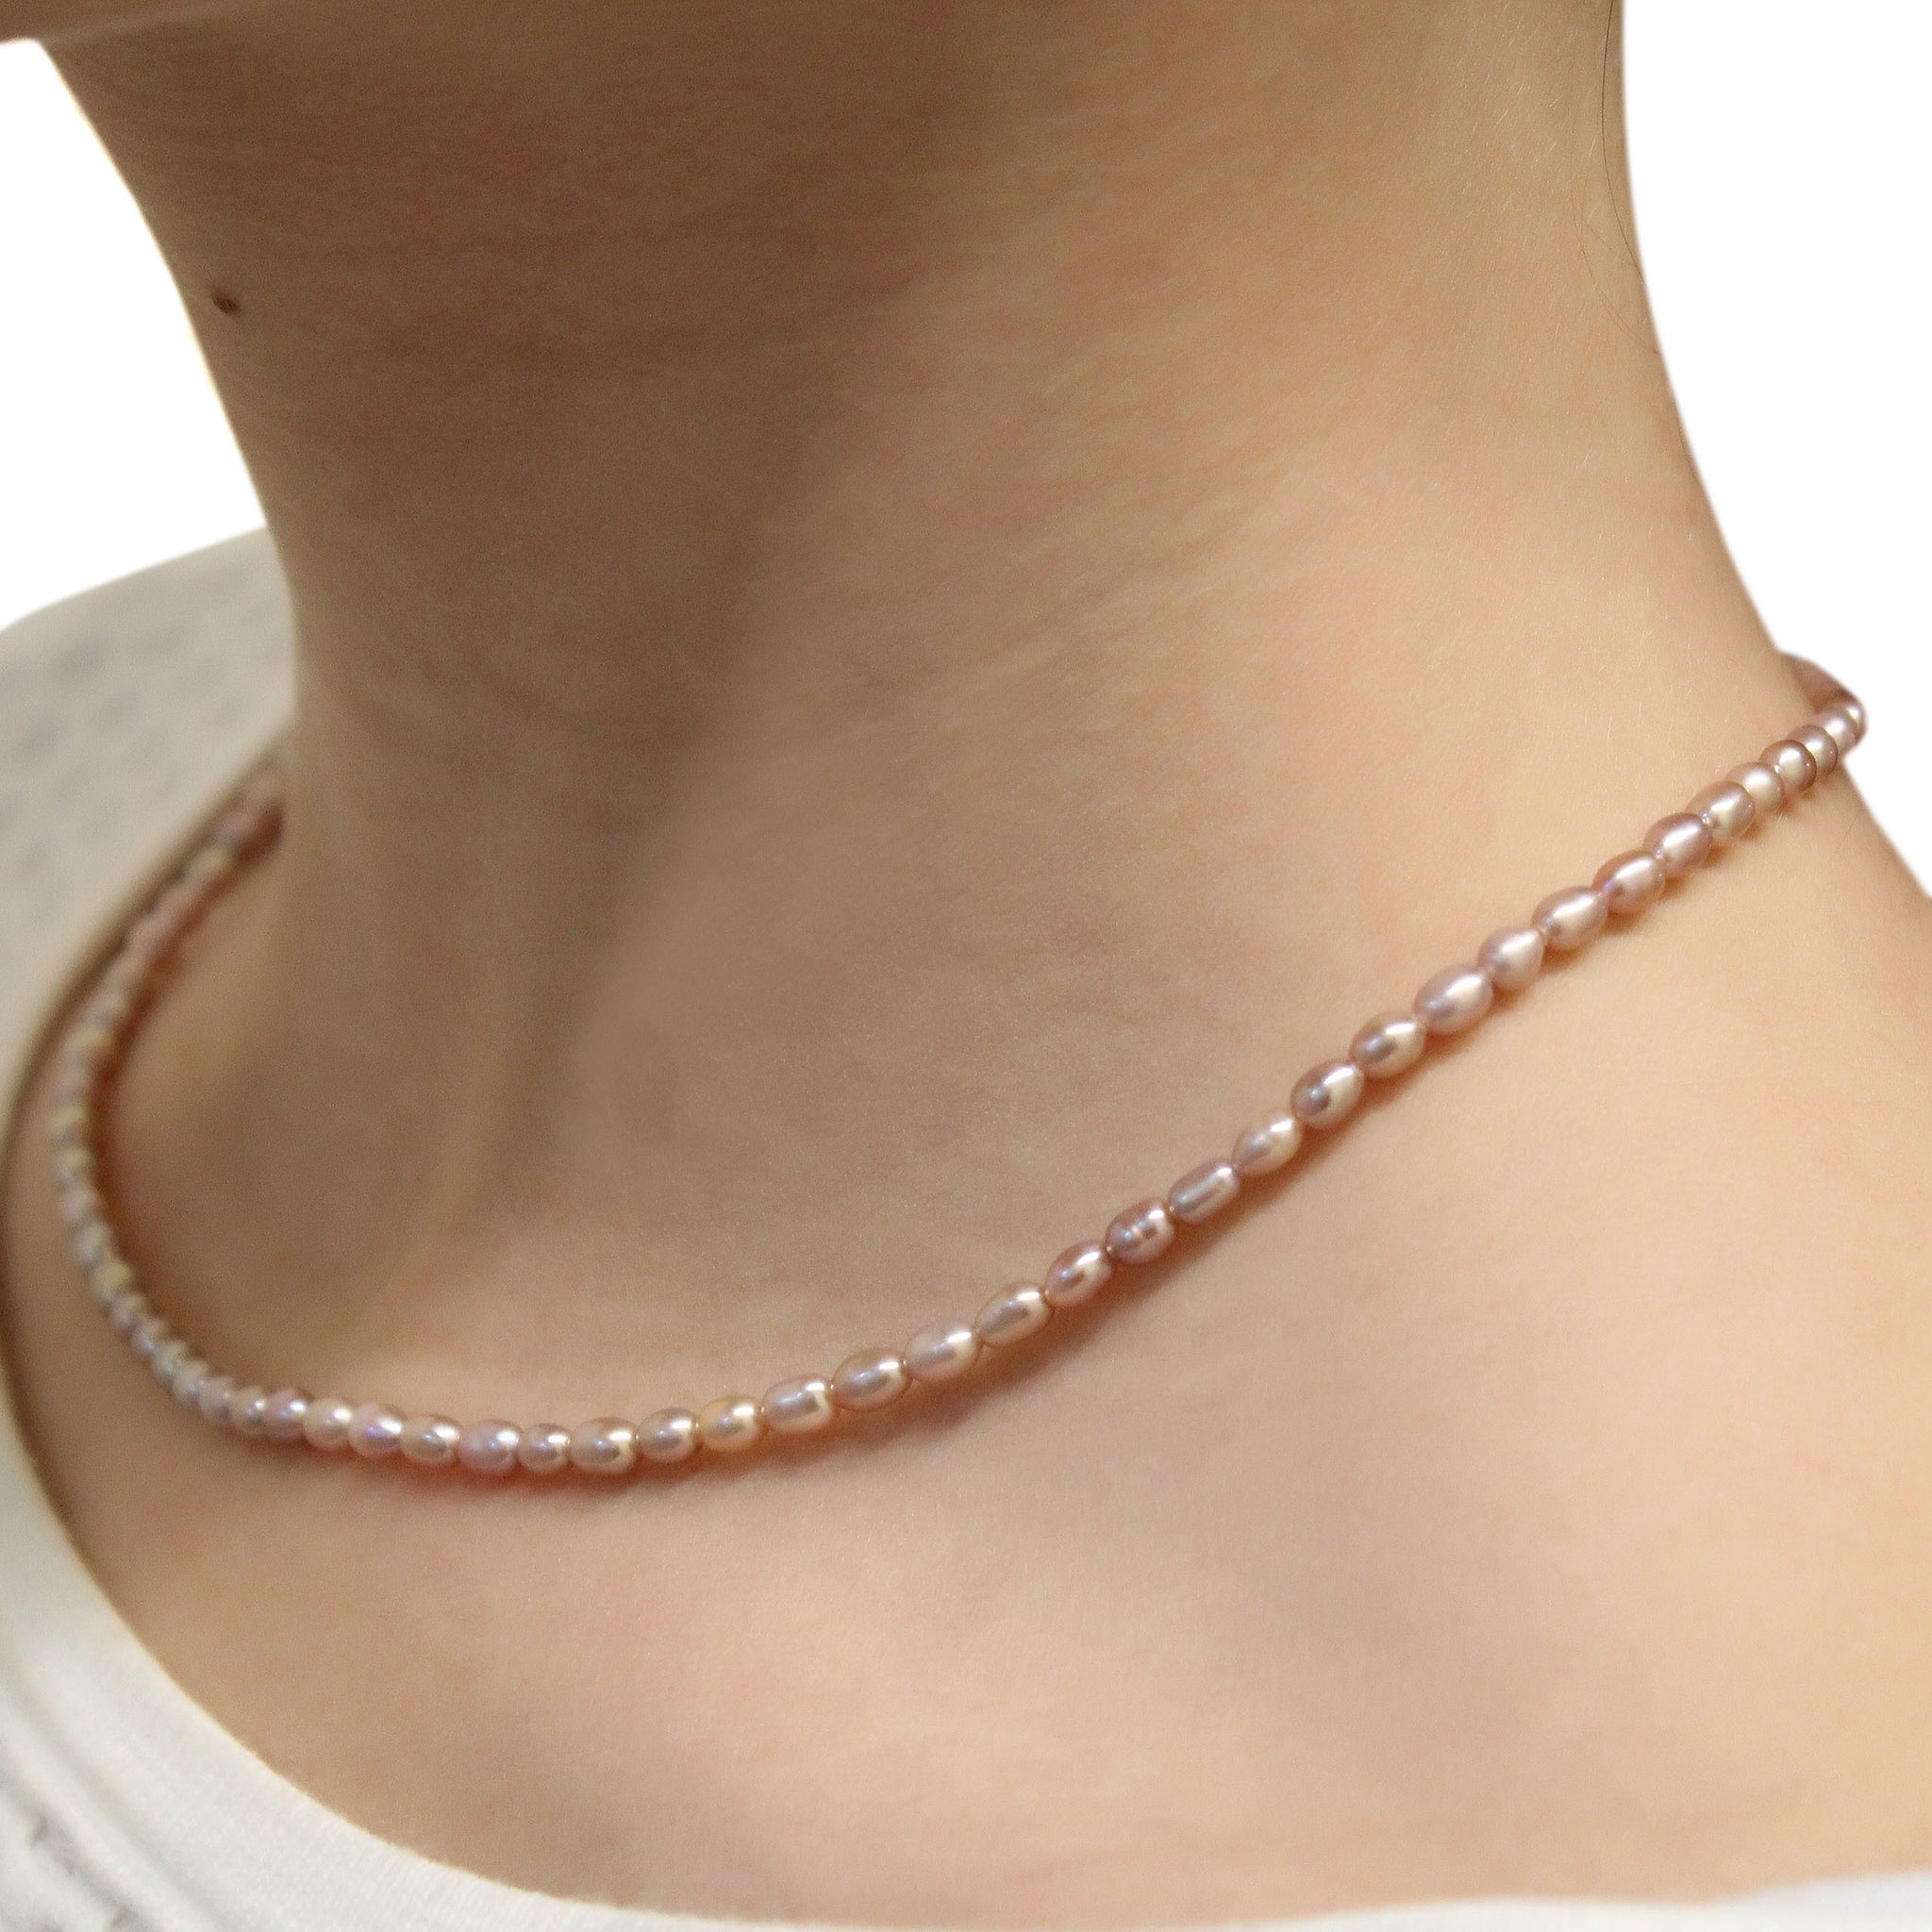 TINY PEARLS - Pearl Necklace for Girls nakynAo9